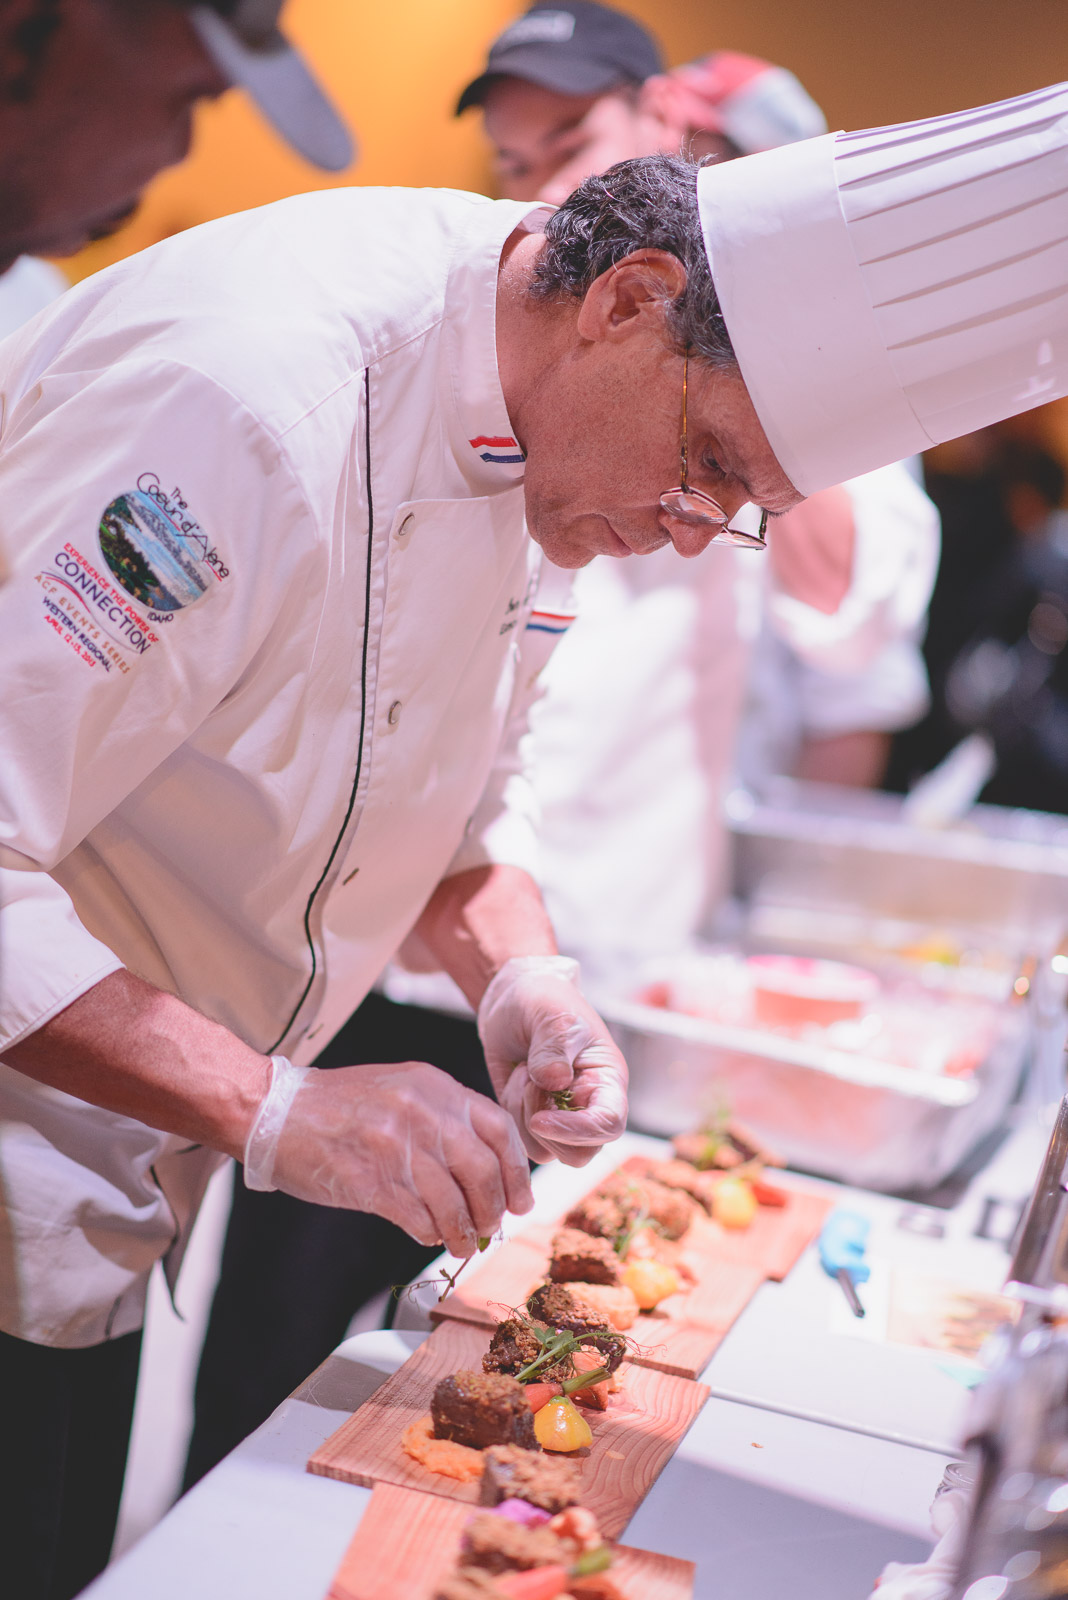 Chef Don Sanchez orchestrating the back of house line at an event in October. Catered and Coordinated by LeCroissant Catering & Events Welcome our New Executive Chef at LeCroissant! Welcome our New Executive Chef at LeCroissant! 141